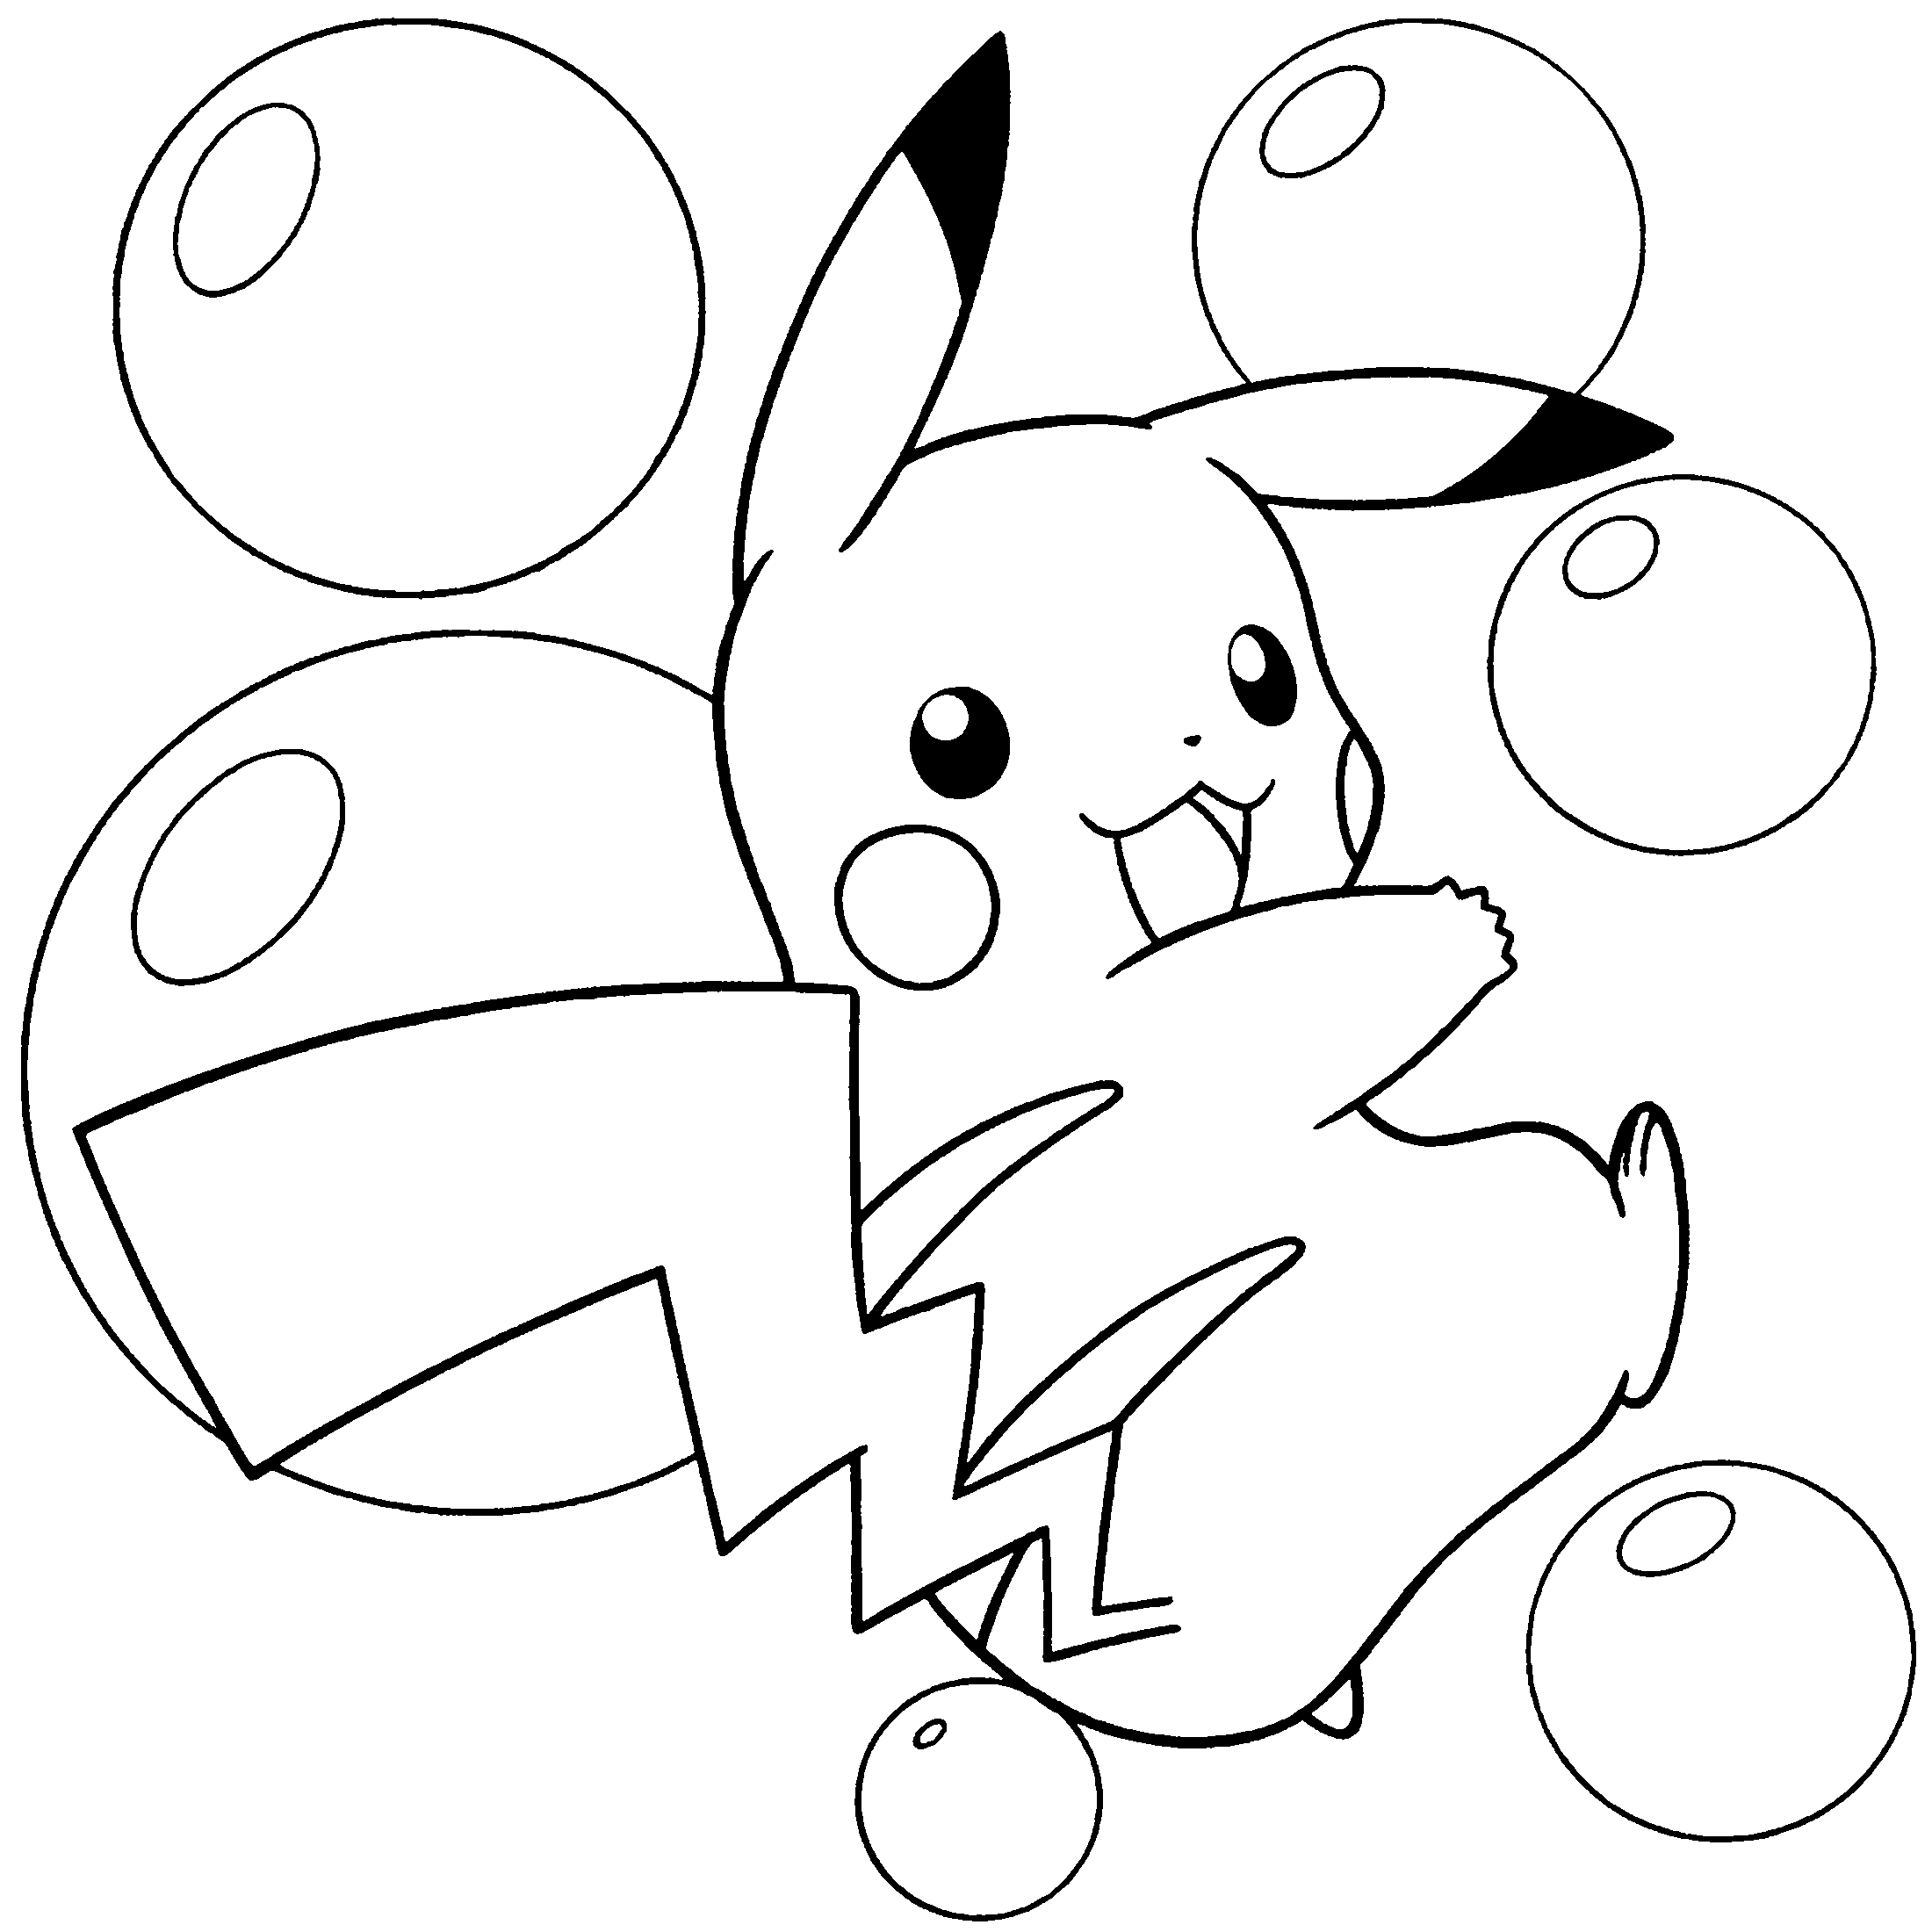 Pin By K O On Coloring Pages Activities Pokemon Coloring Pages